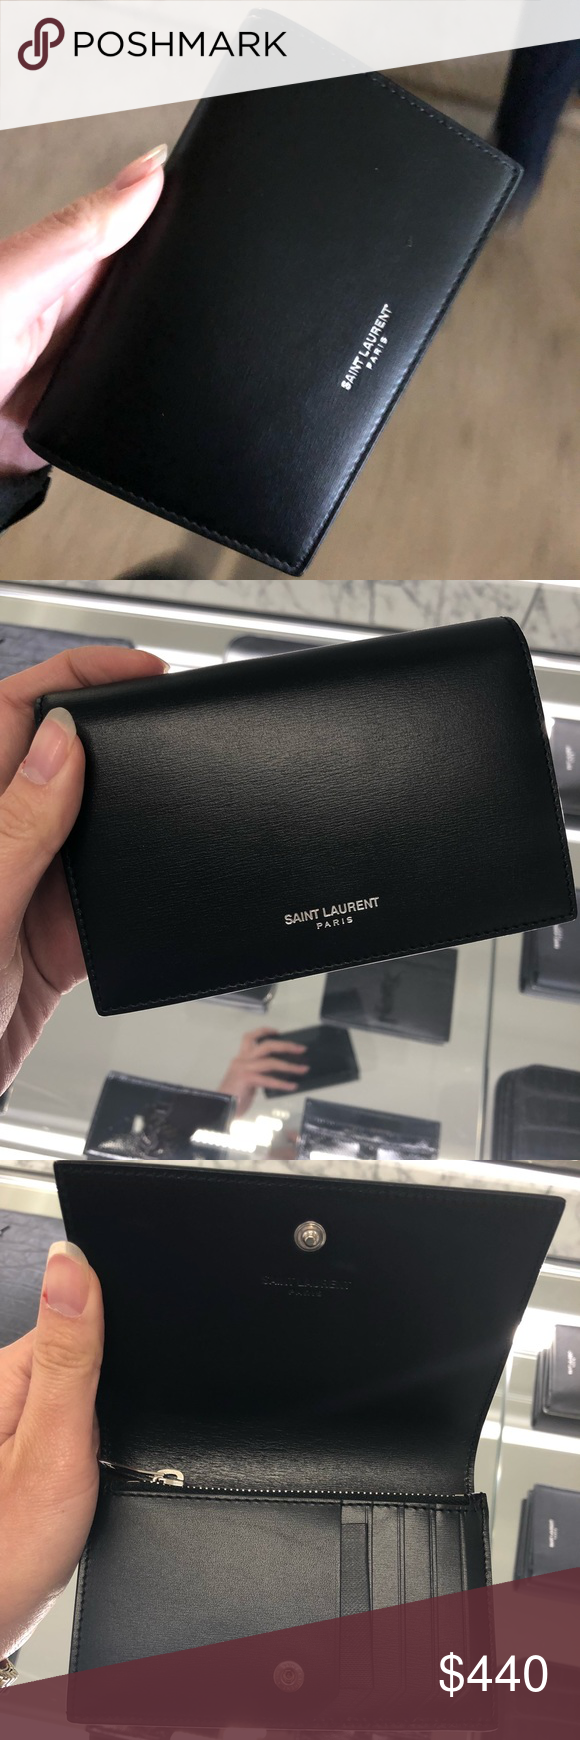 a833285510 YSL Fragments Flap Wallet Never used. Have original packaging box ...